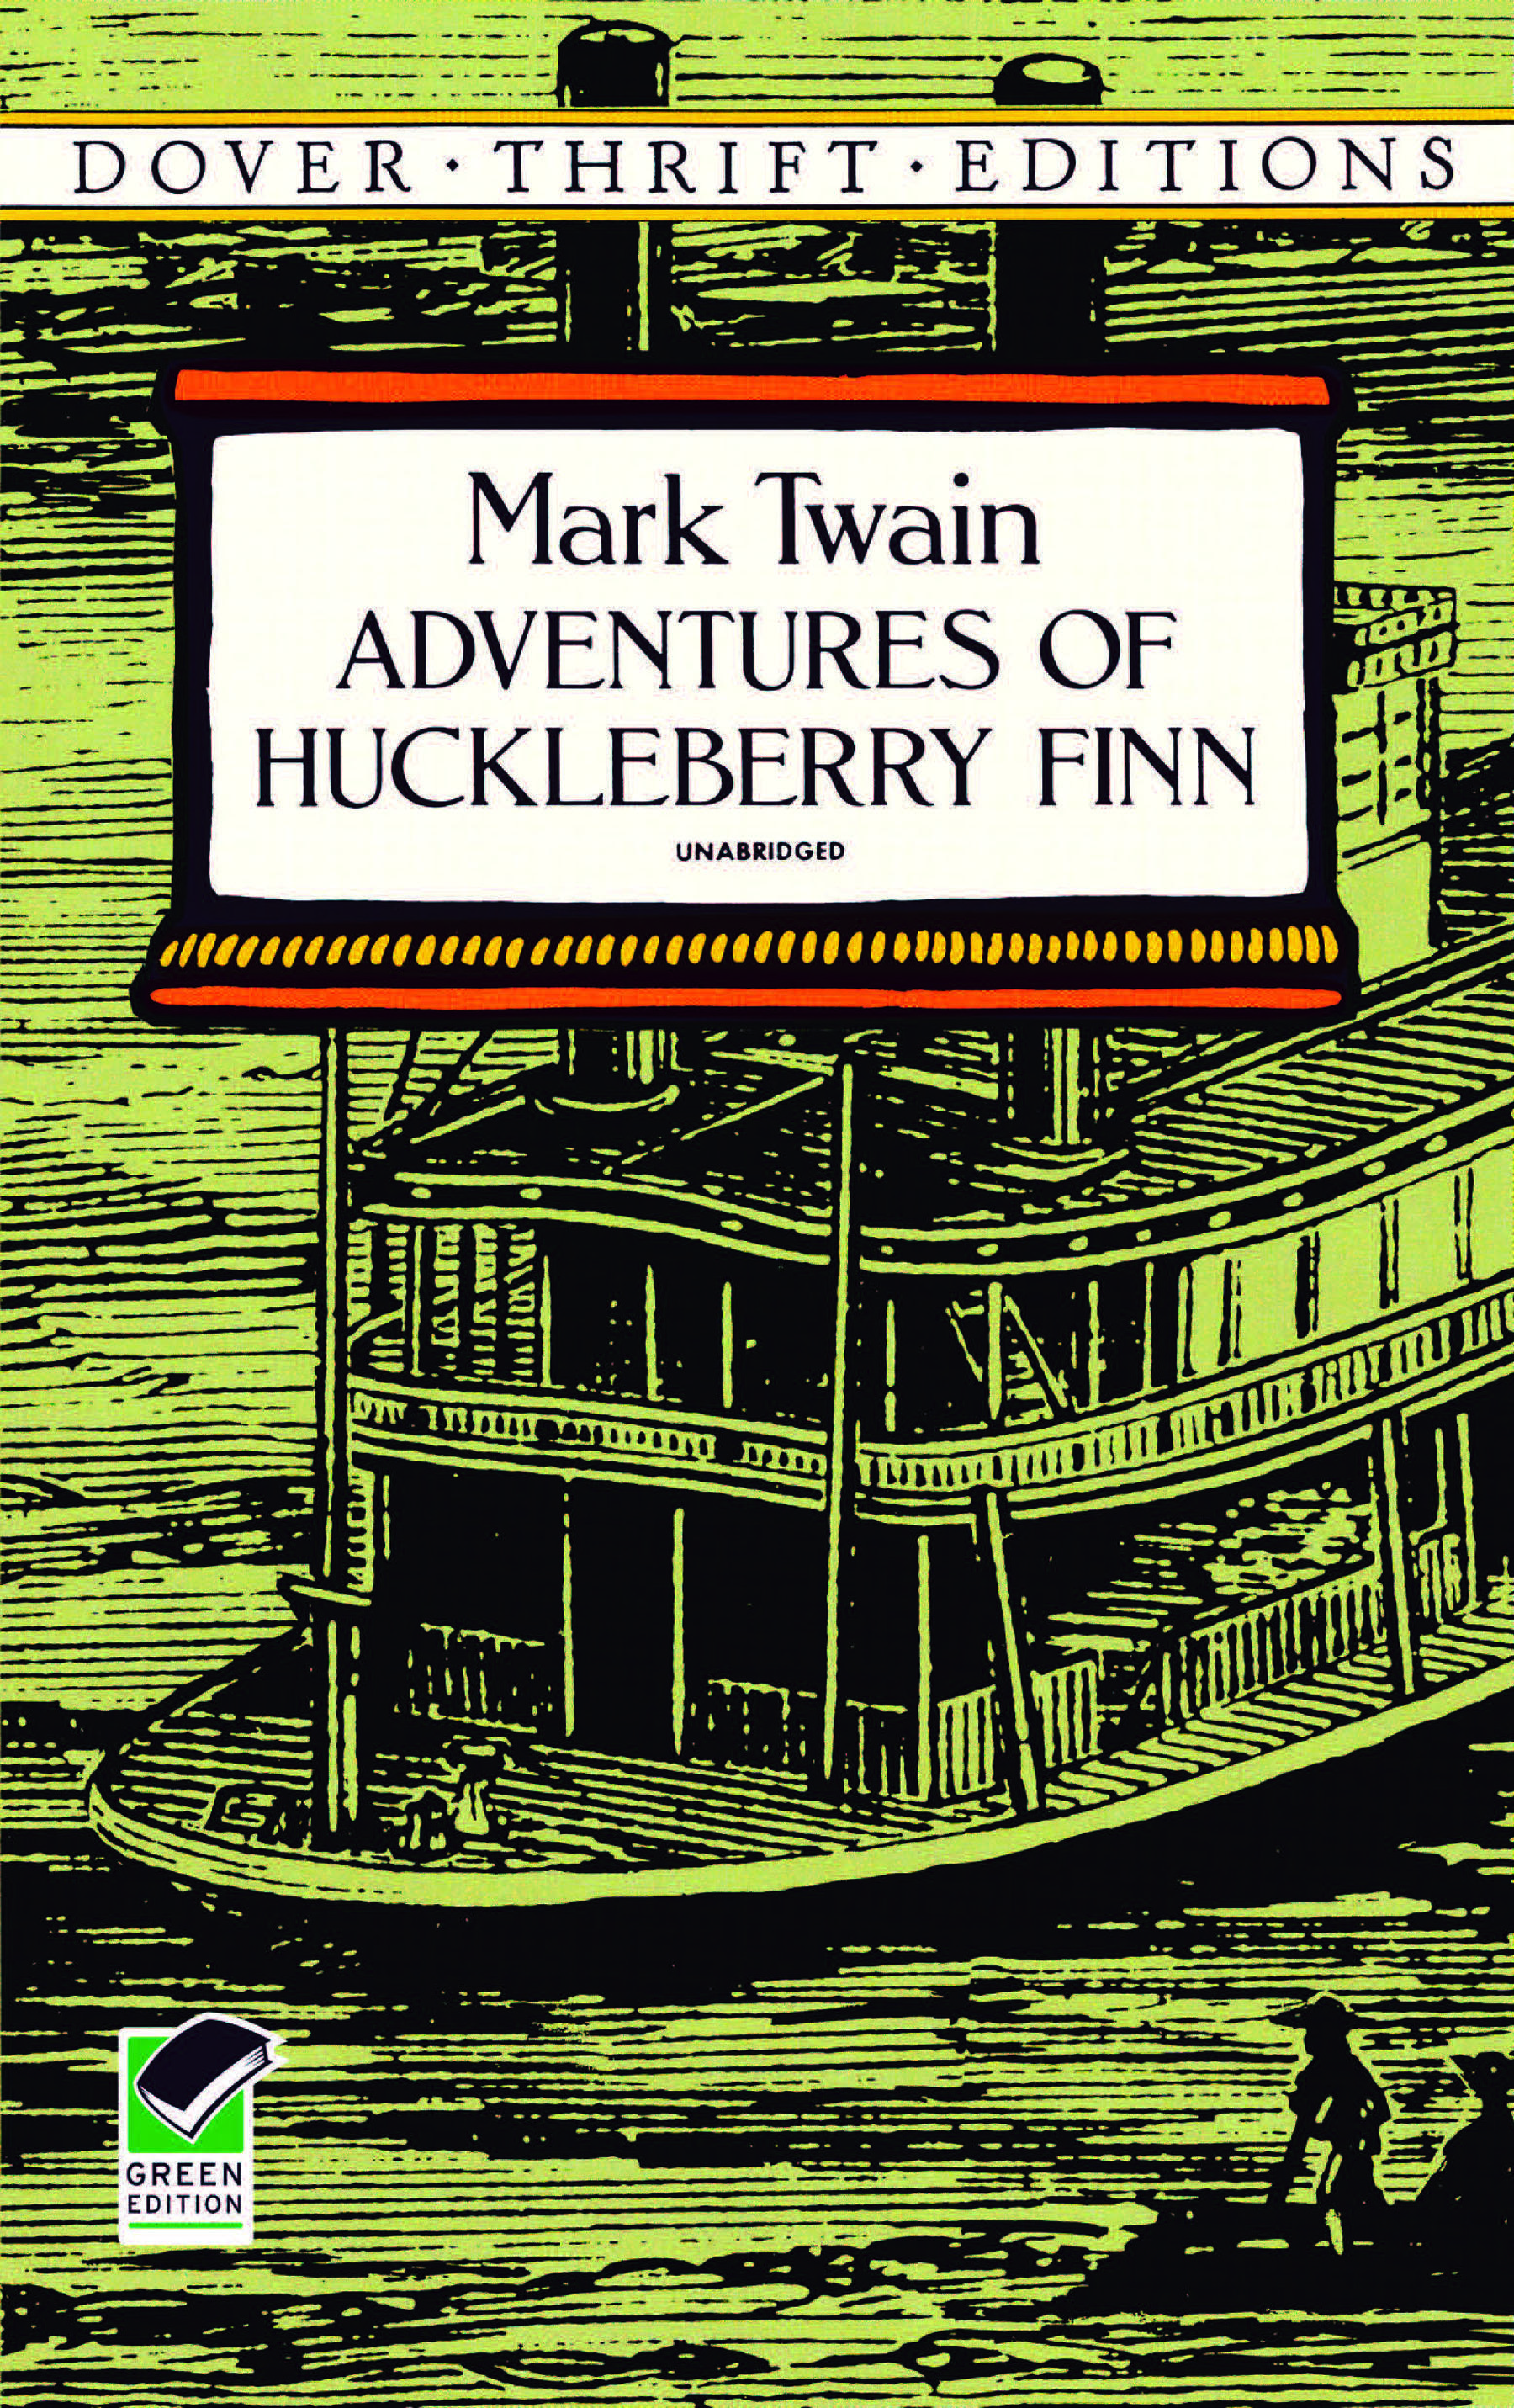 an analysis of the main character in the adventures of huckleberry finn a novel by mark twain - the liberties within the adventures of huckleberry finn the adventures of huckleberry finn is an iconic novel that satirizes many of the romantic writers during it's time the main character, huck, is a young boy who lives with a widow and her sister because of his father's drunken stupors and abusive ways.